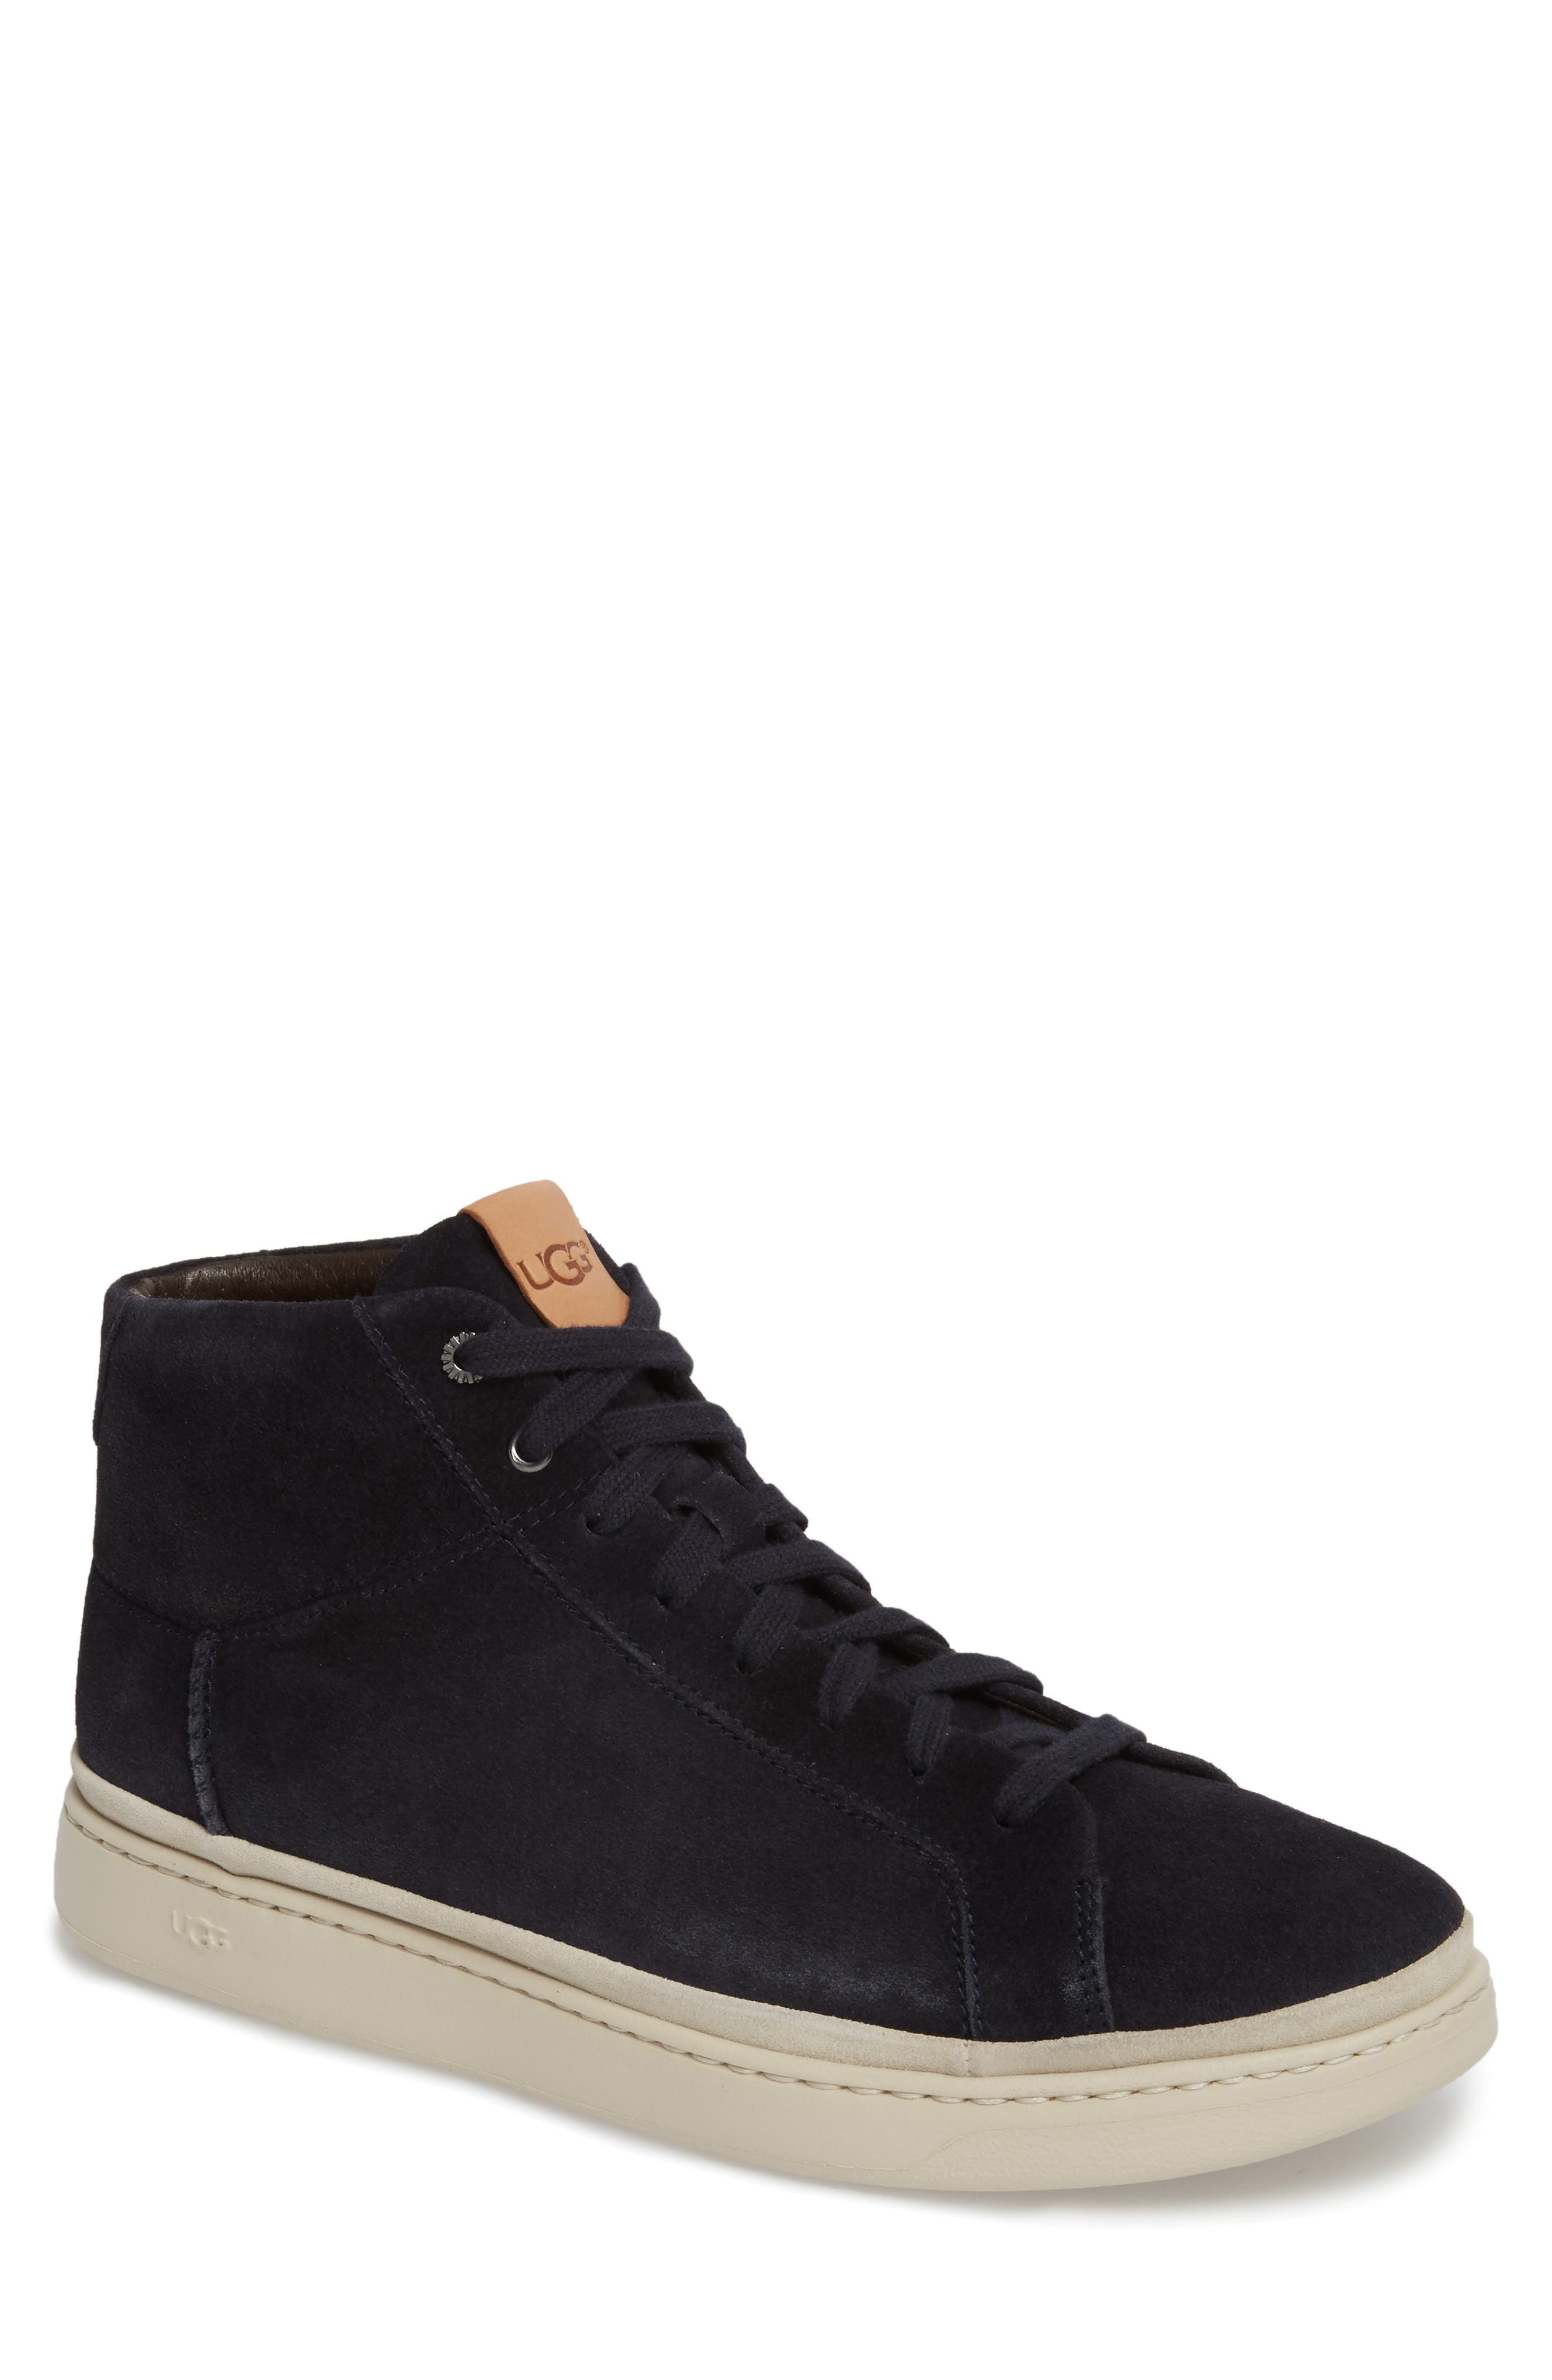 Cali High Top Sneaker,                             Main thumbnail 1, color,                             NAVY LEATHER